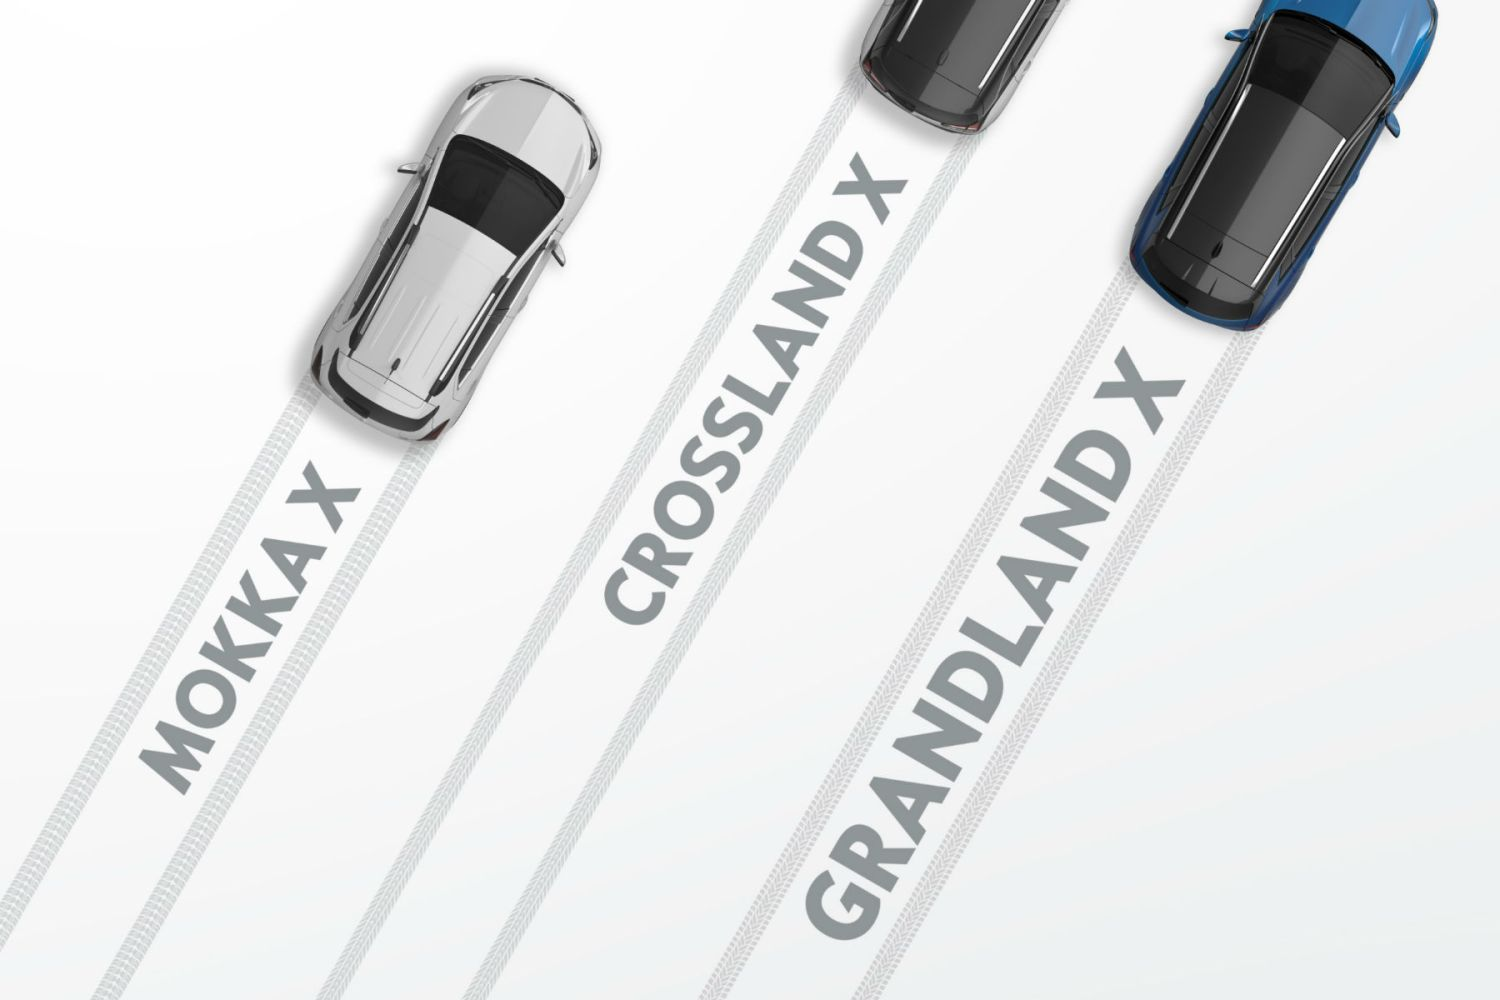 Vauxhall Grandland X teased: new crossover will rival Ford Kuga